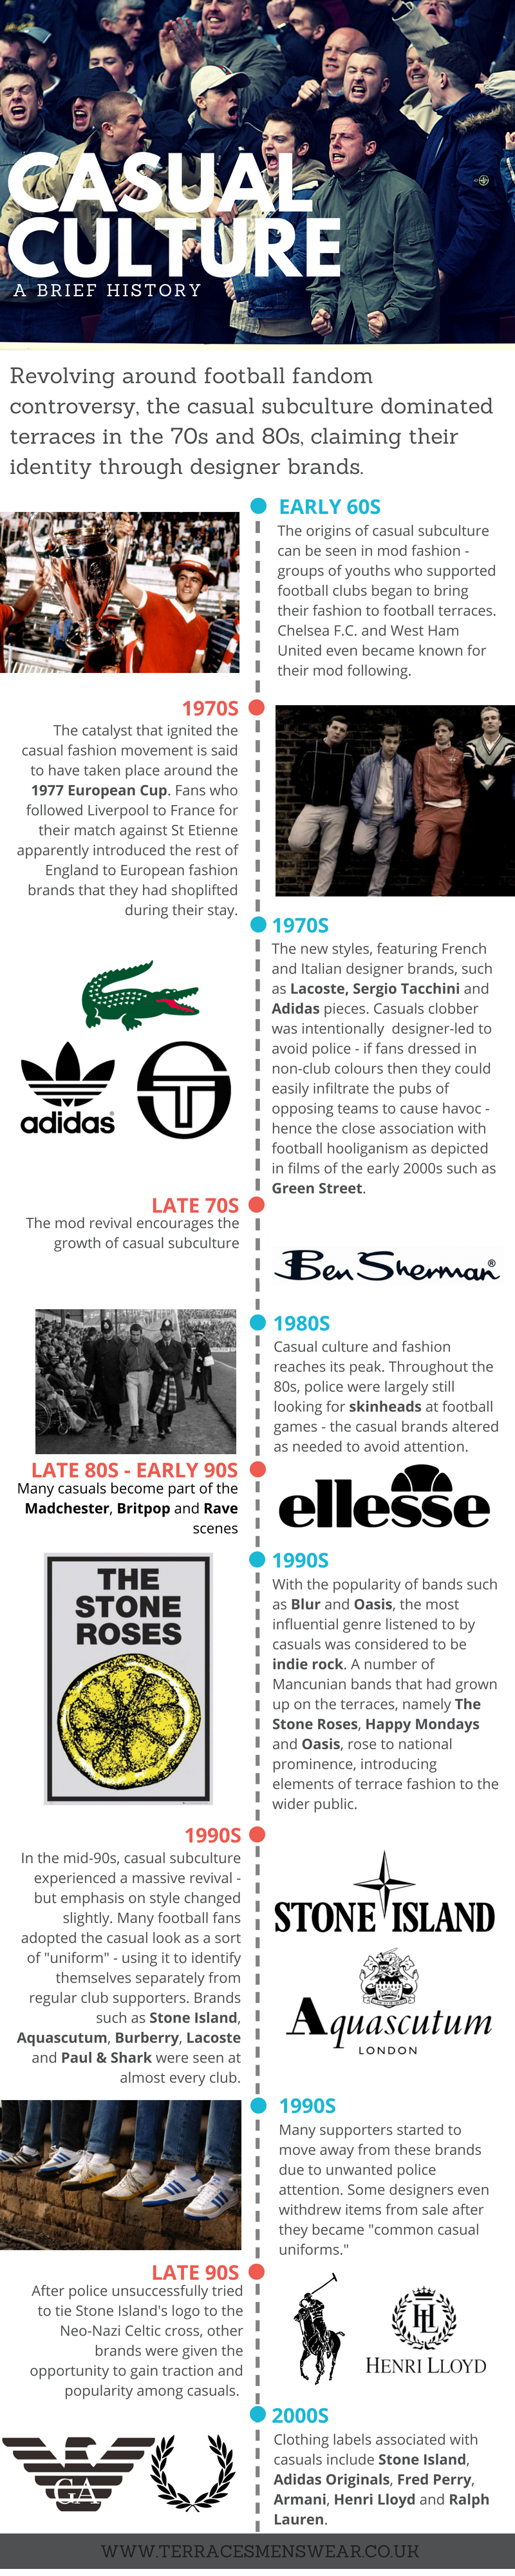 fashion history of UK Football, football, England, World Cup, timeline of casual culture